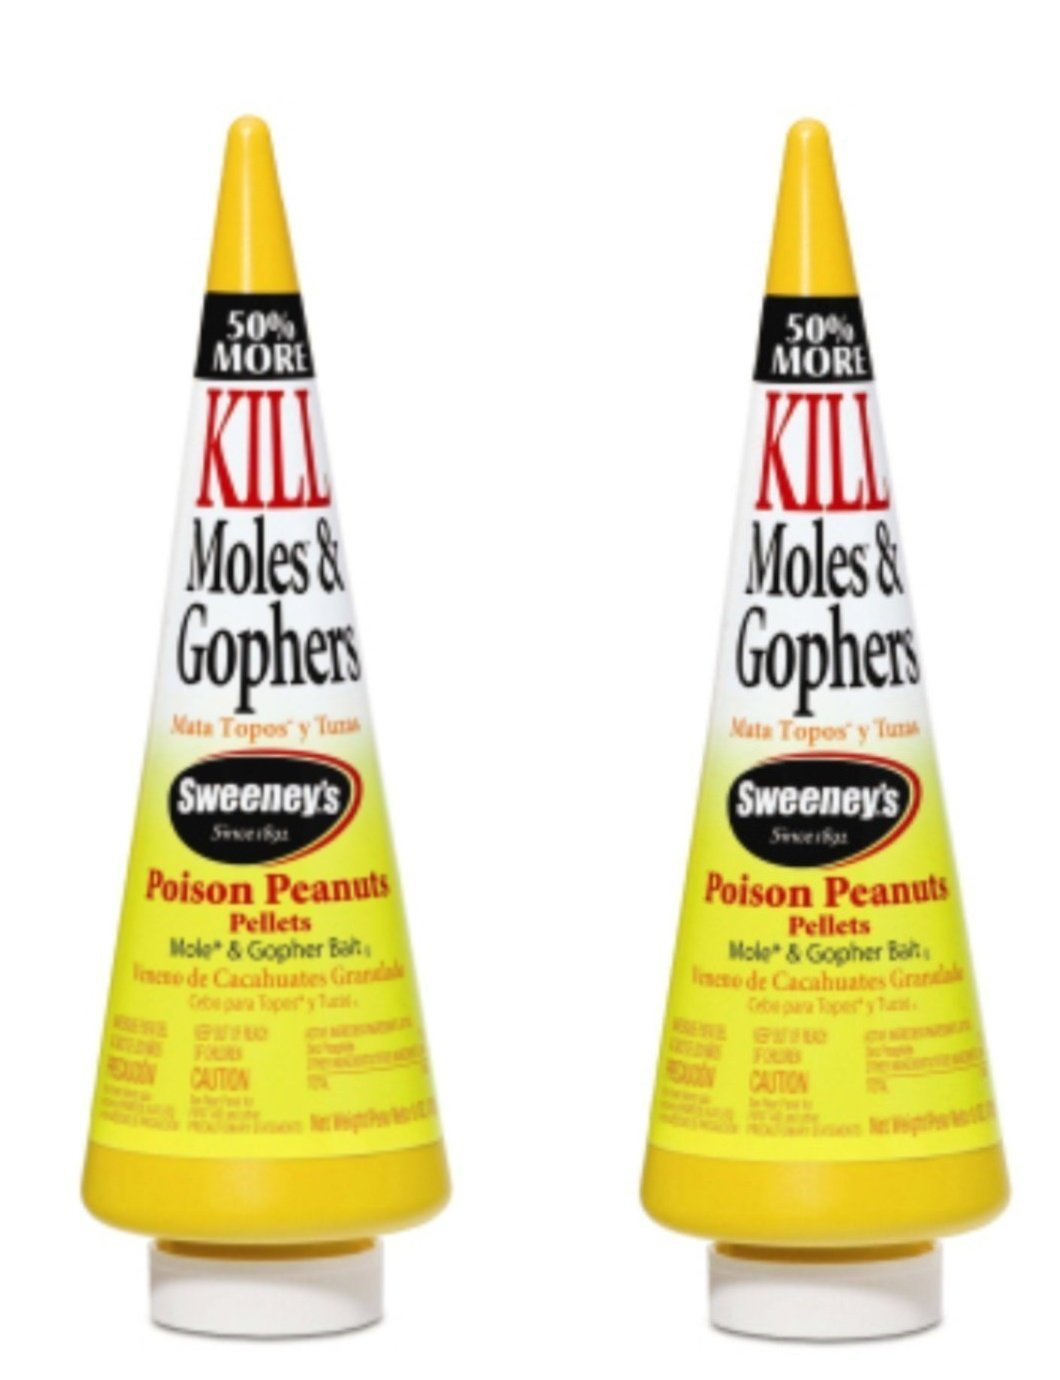 Sweeney's Mole and Gopher Poison Peanuts Bait 6 Ounce (Pack of 2) by Sweeney's